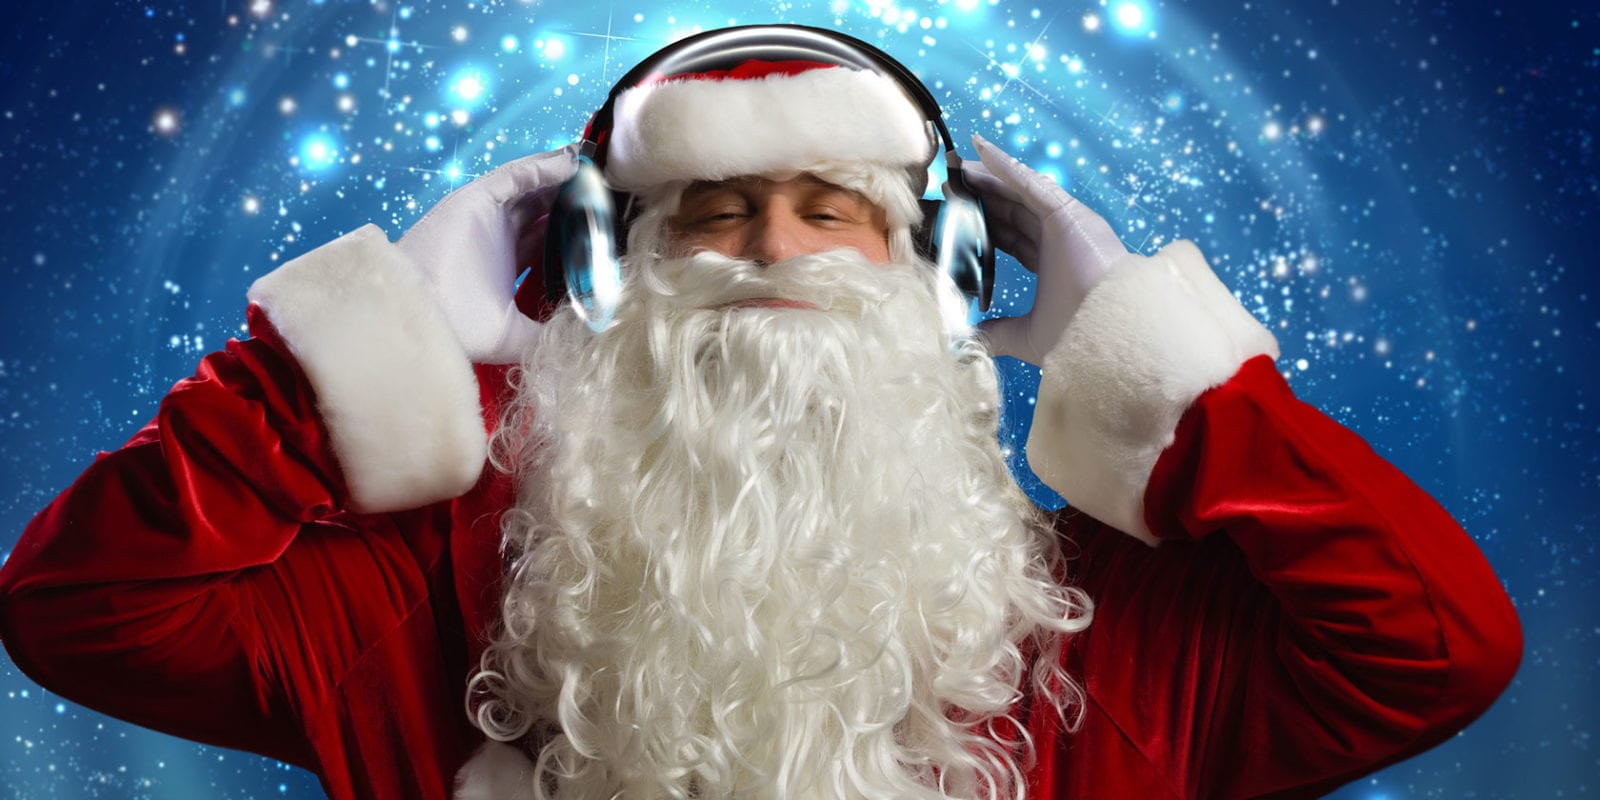 You Tube Christmas Music.The Best Christmas Music On Youtube The Better Parent